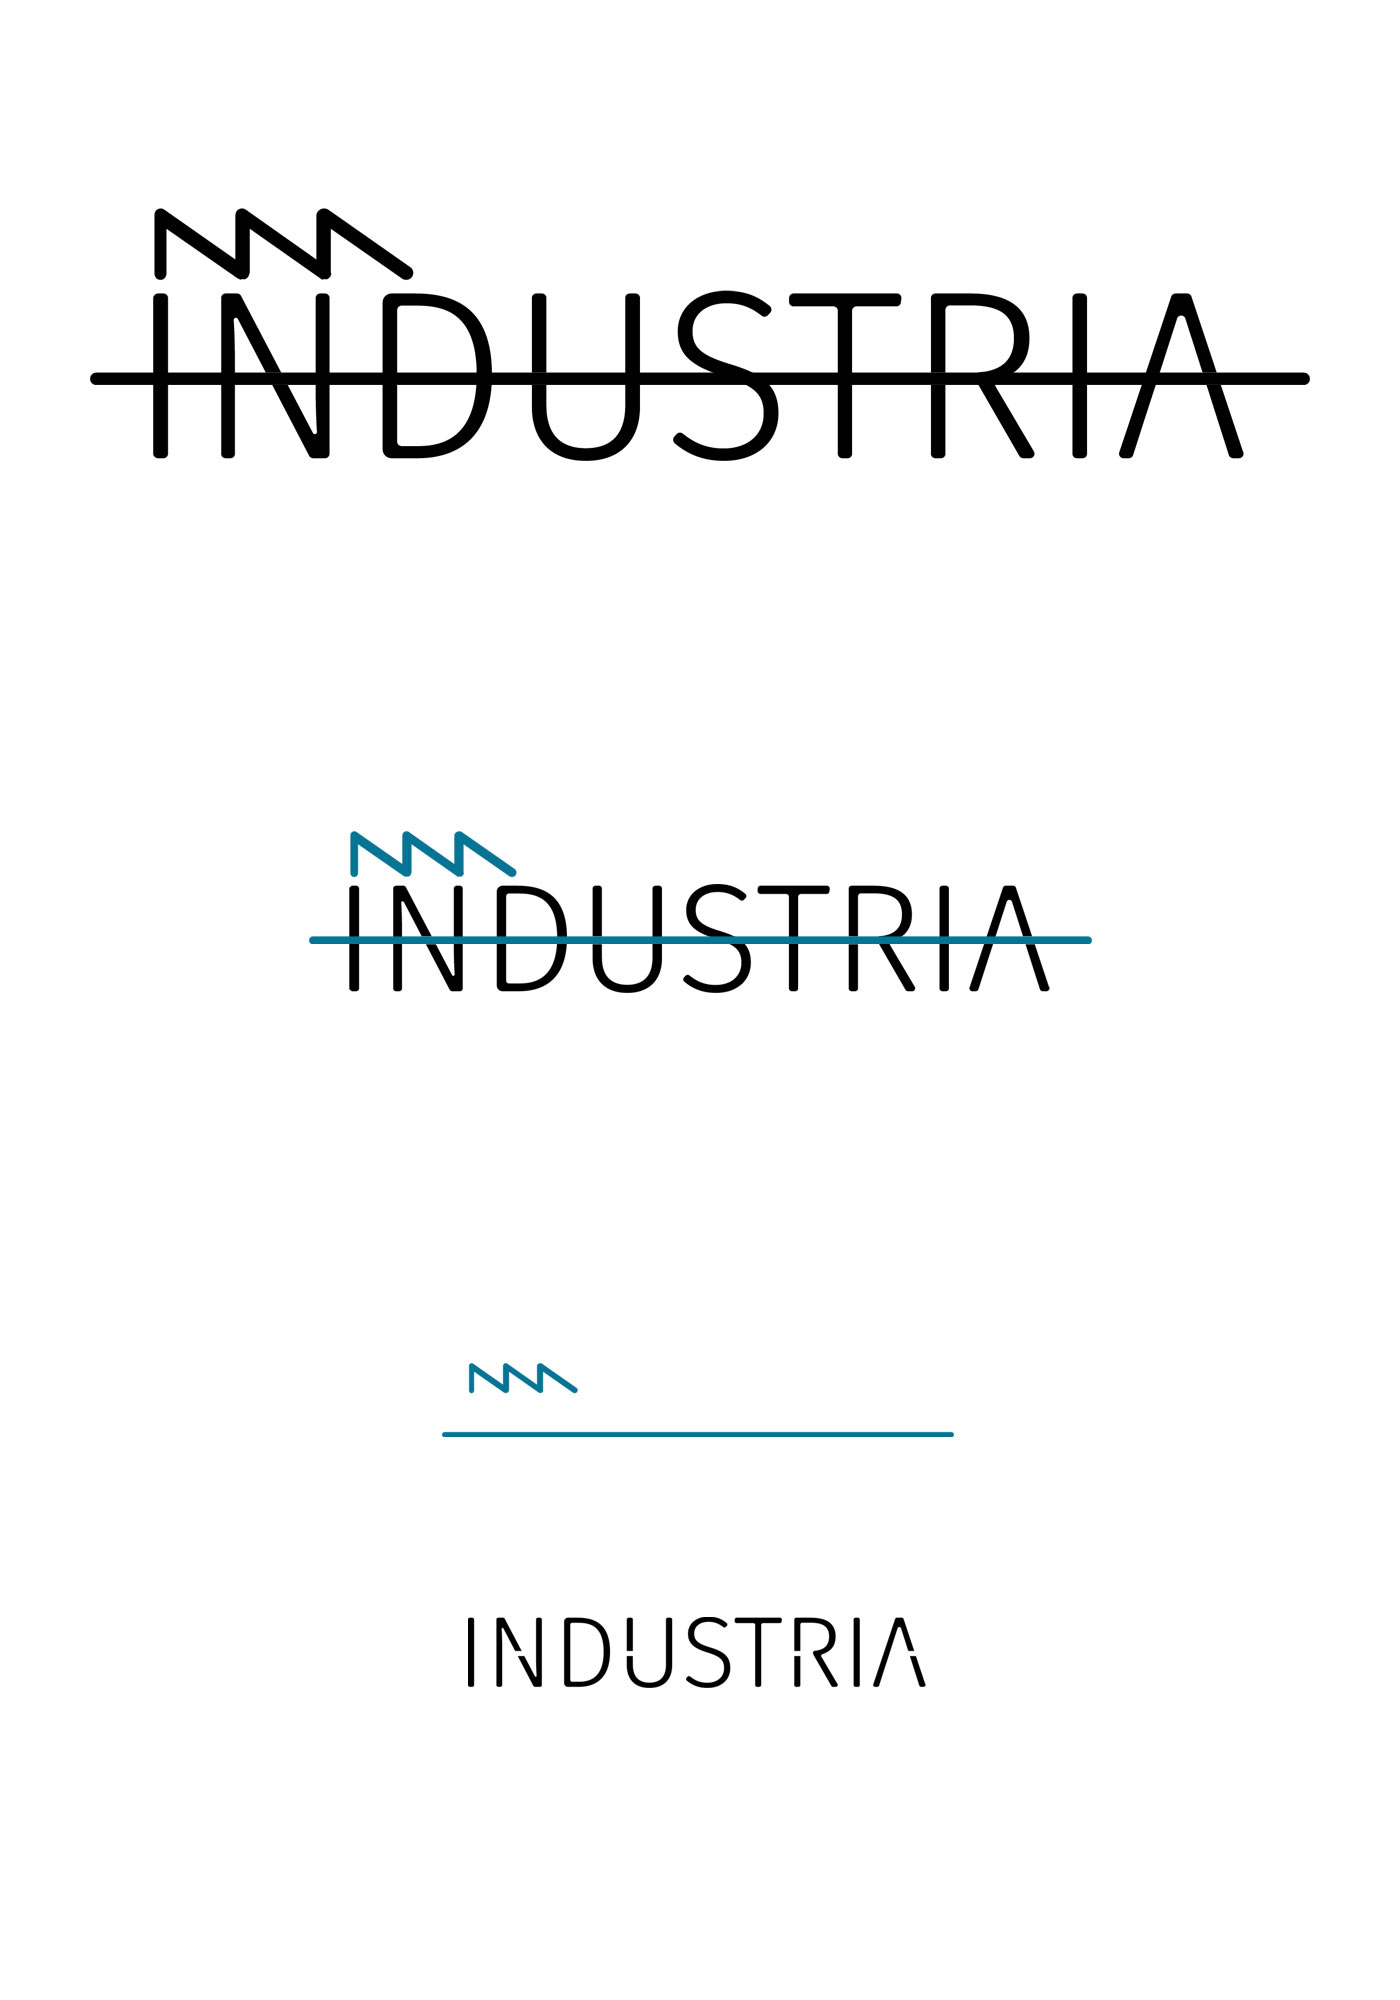 industria logo design